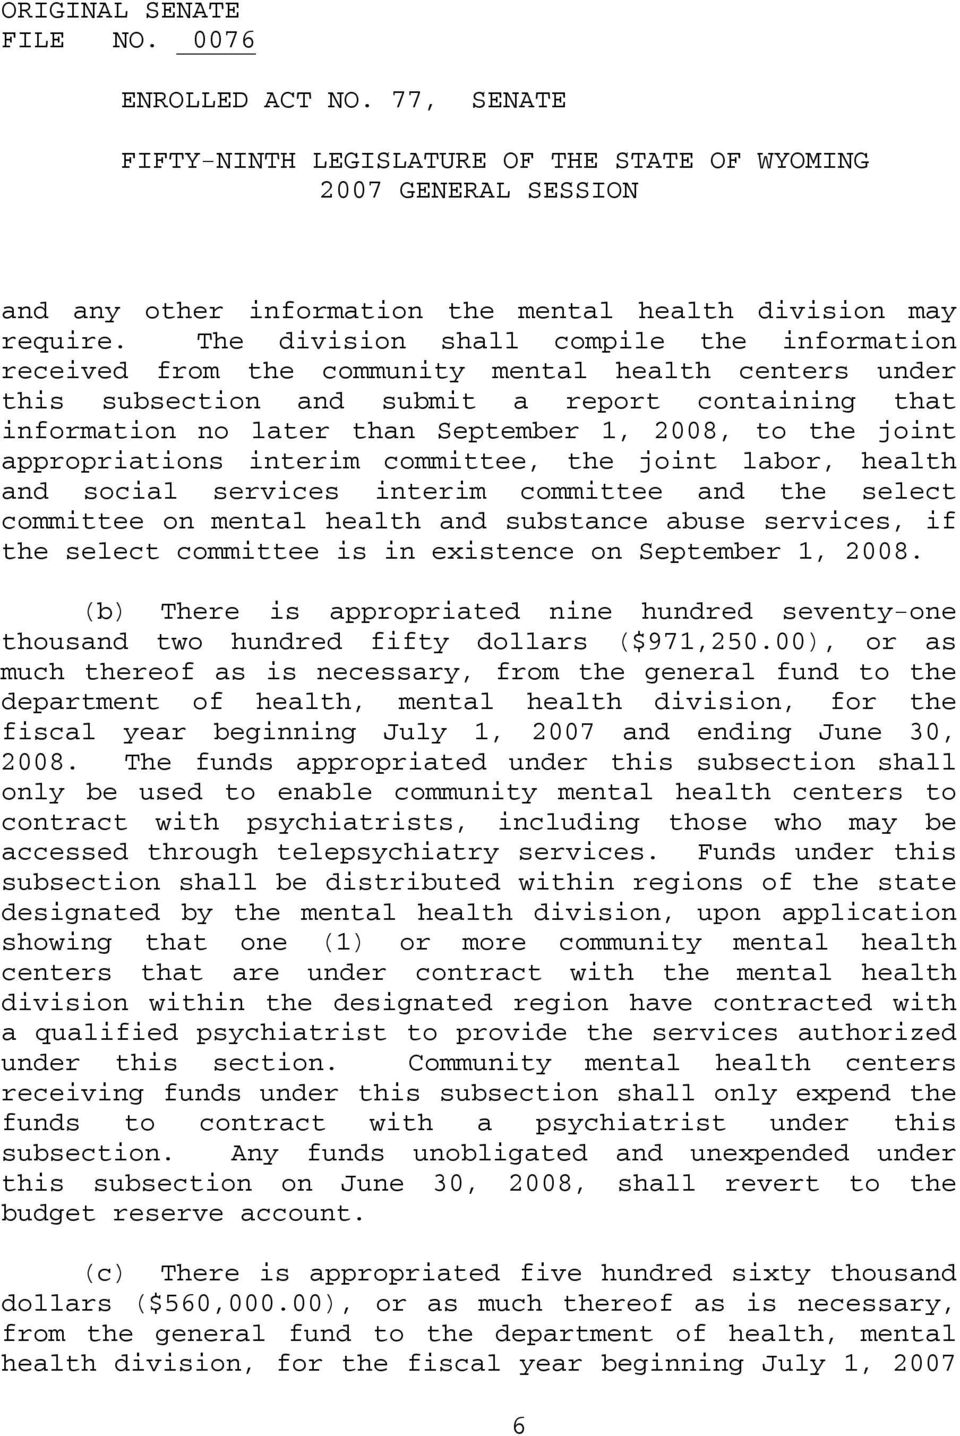 the joint appropriations interim committee, the joint labor, health and social services interim committee and the select committee on mental health and substance abuse services, if the select